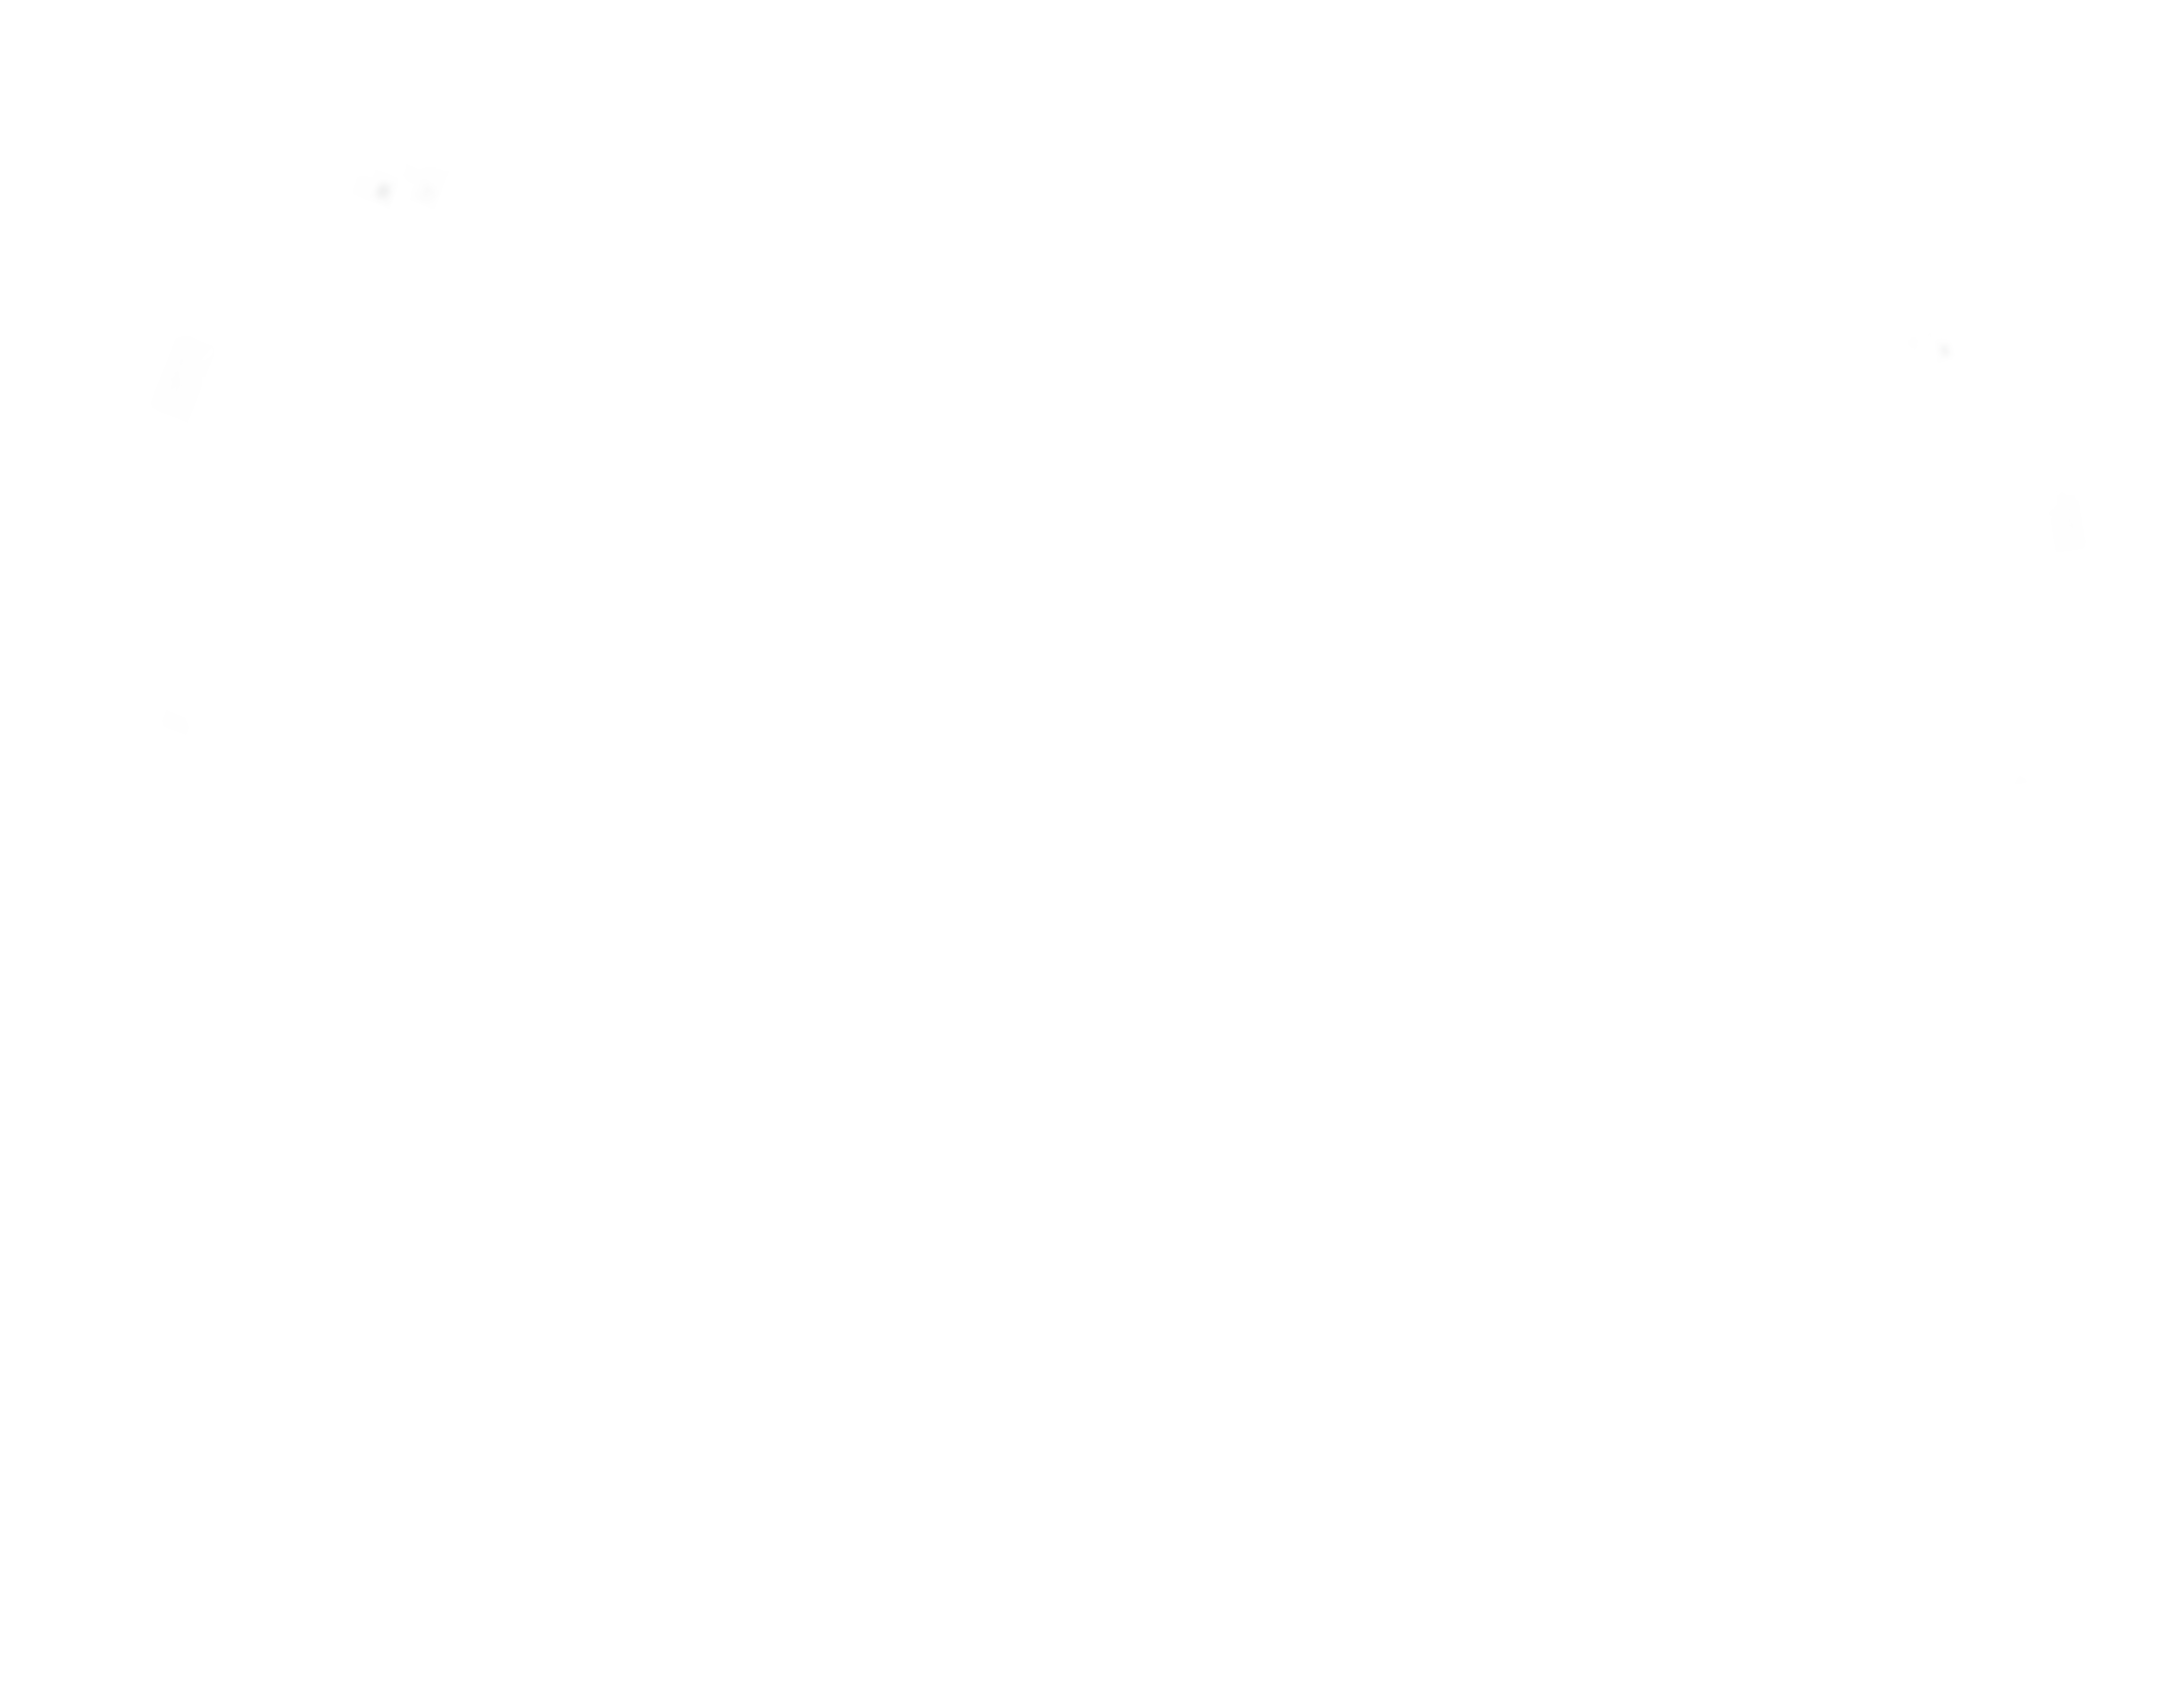 Heart cloud png. Clip art image gallery